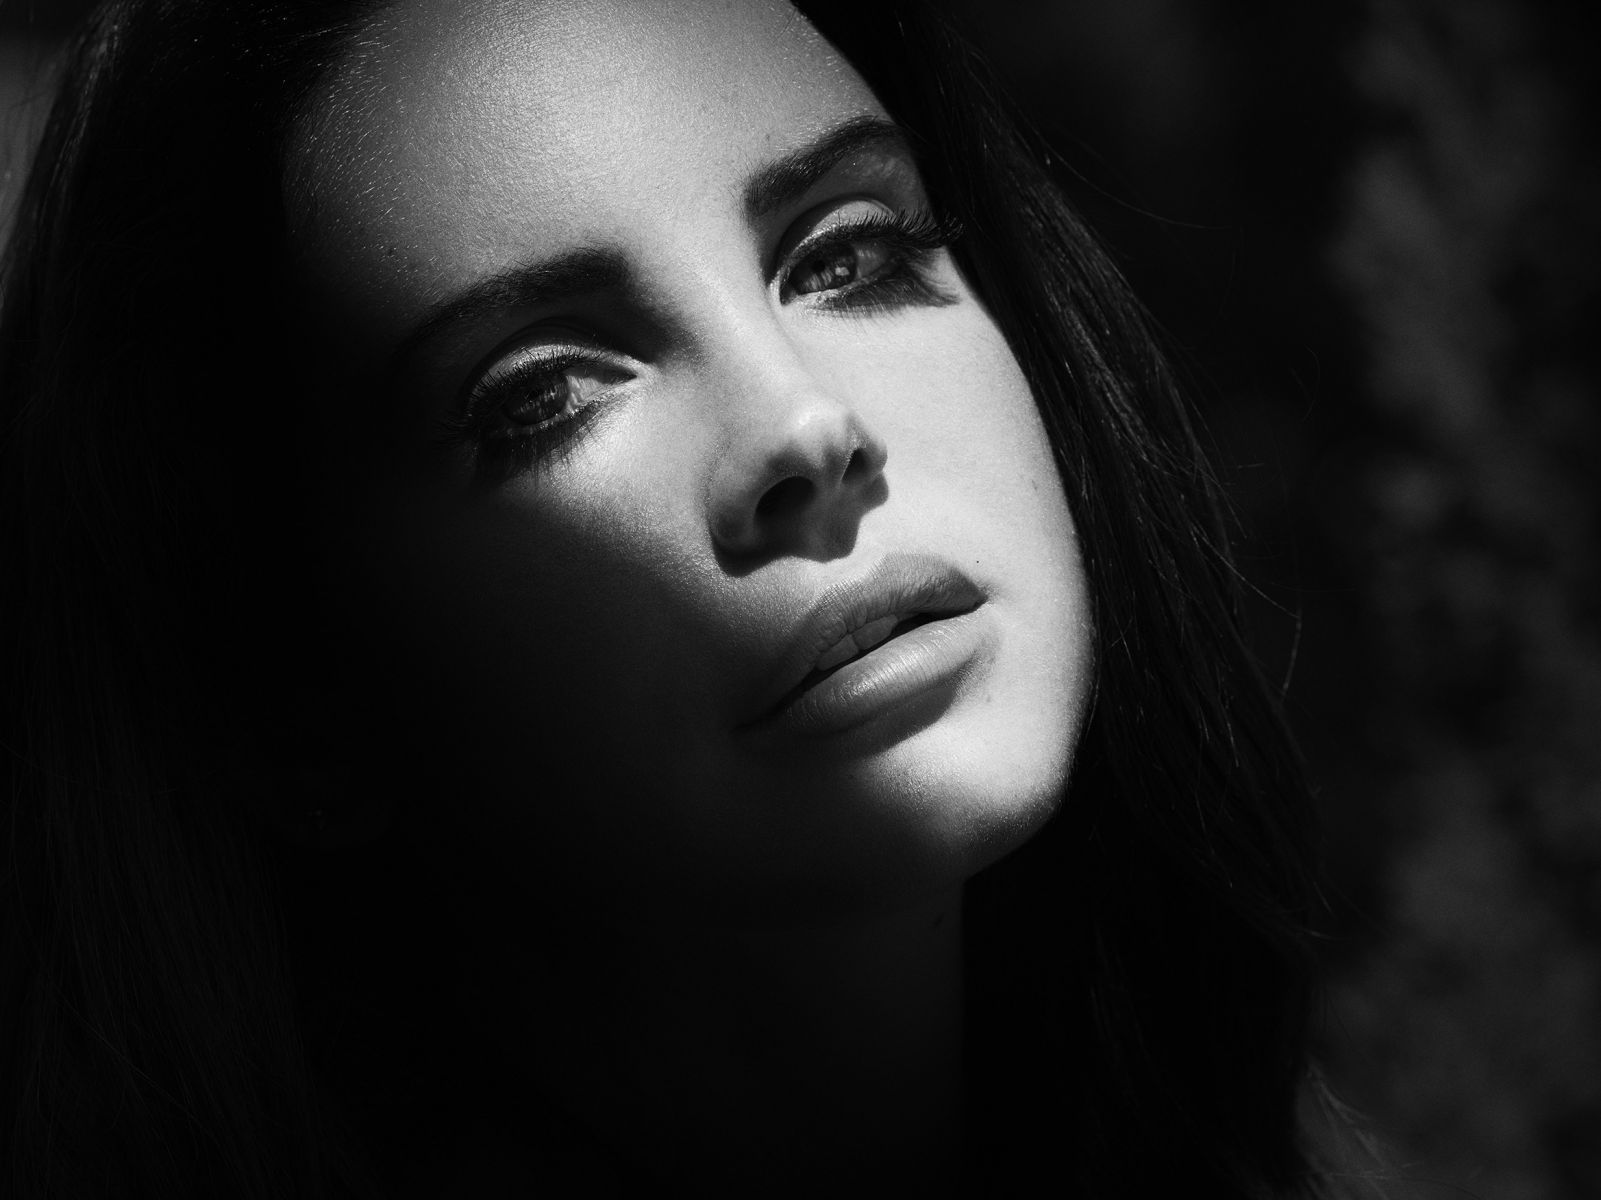 Lana del Rey photographed by Kurt Iswarienko for The New York Times.